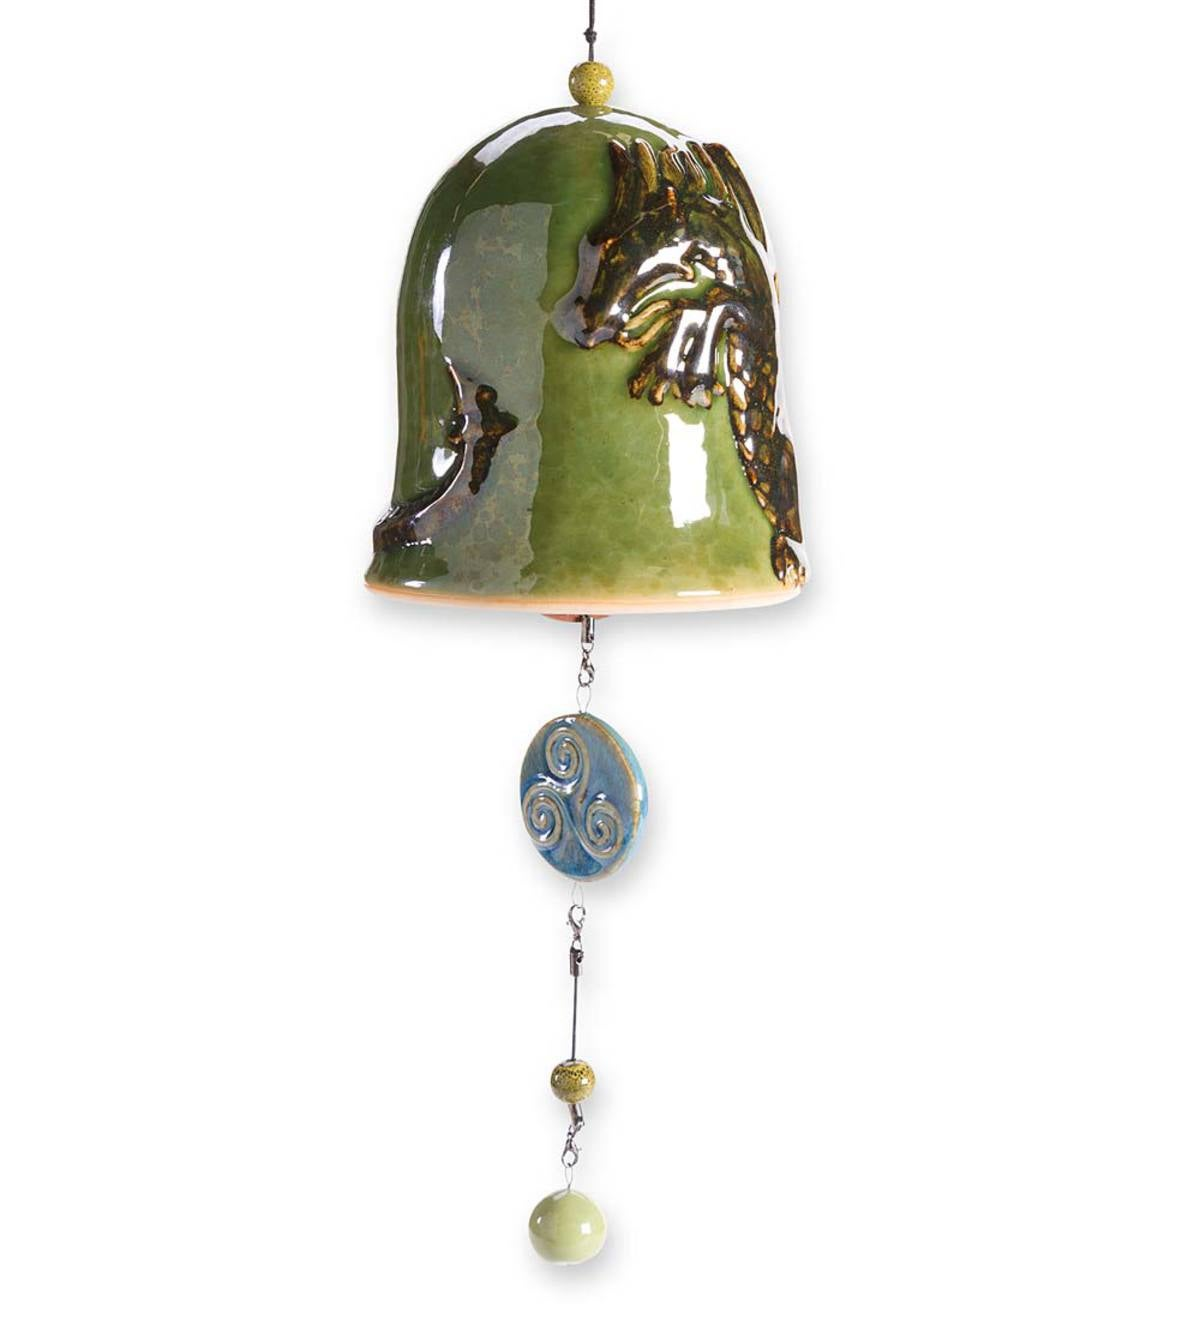 Dragon Whispering Bell - Free 2 Day Delivery - Green